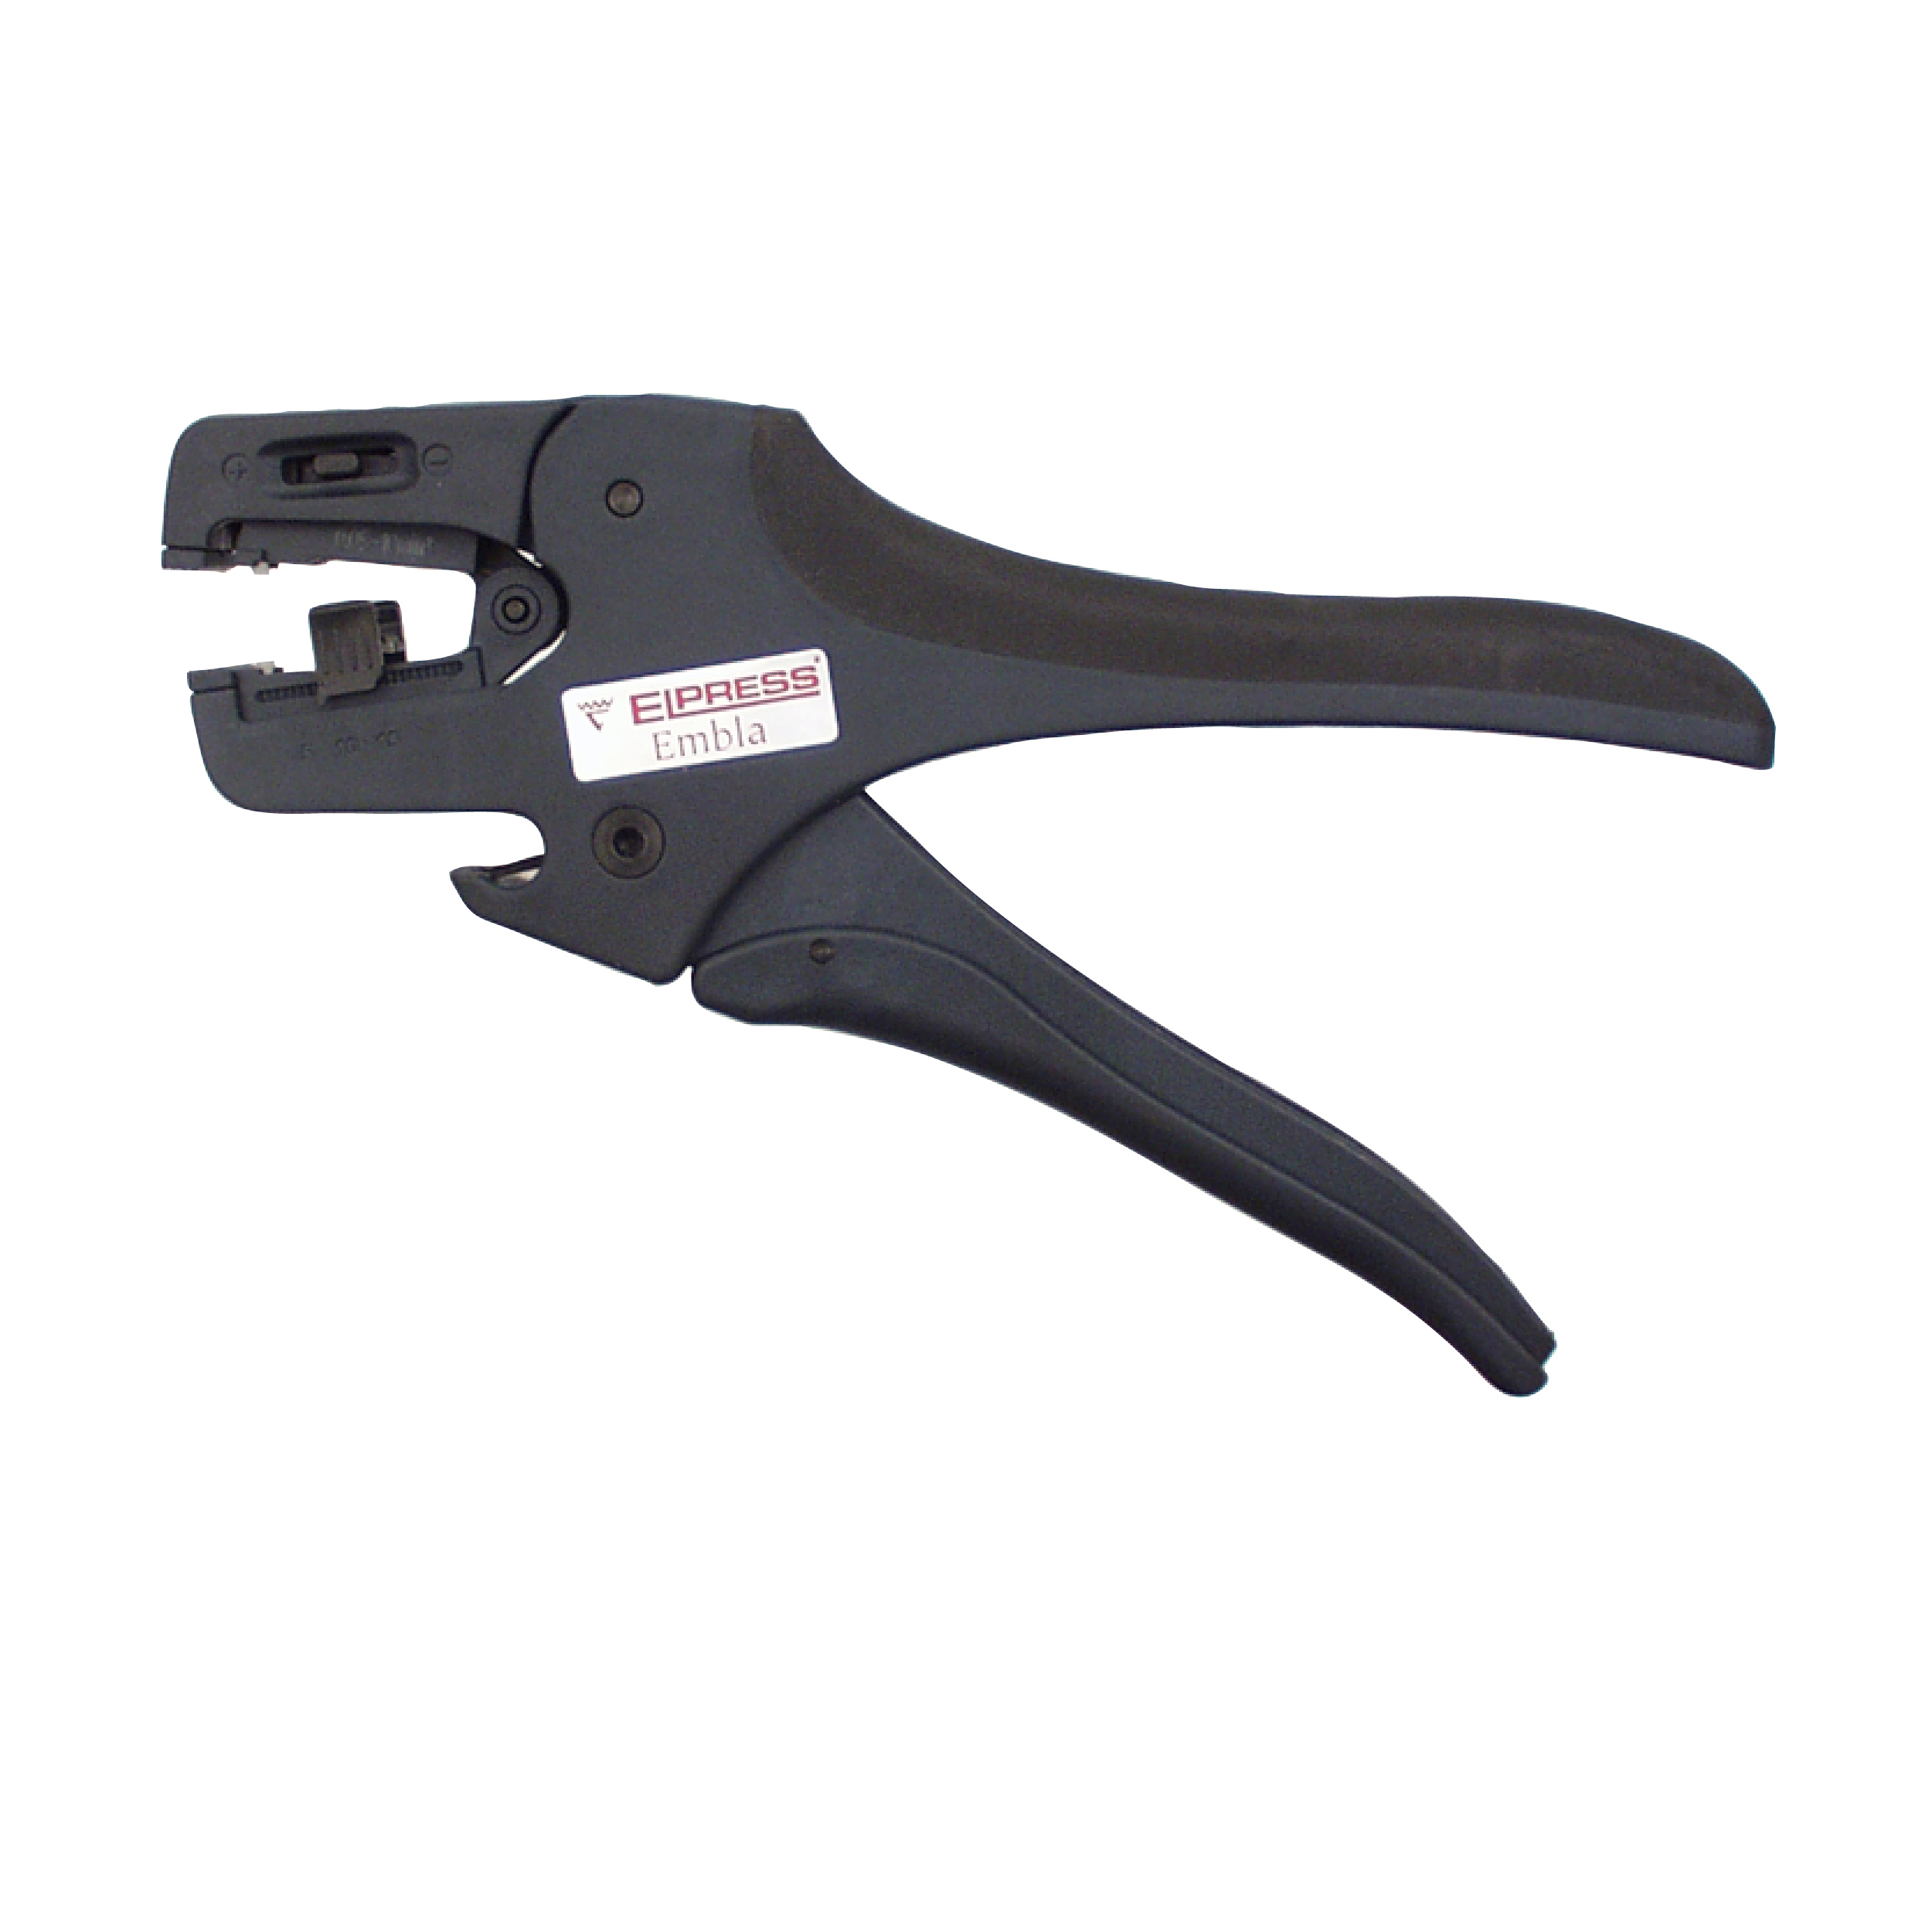 Elpress EMBLA Cutting and Stripping Tool (0.02-16mm²)